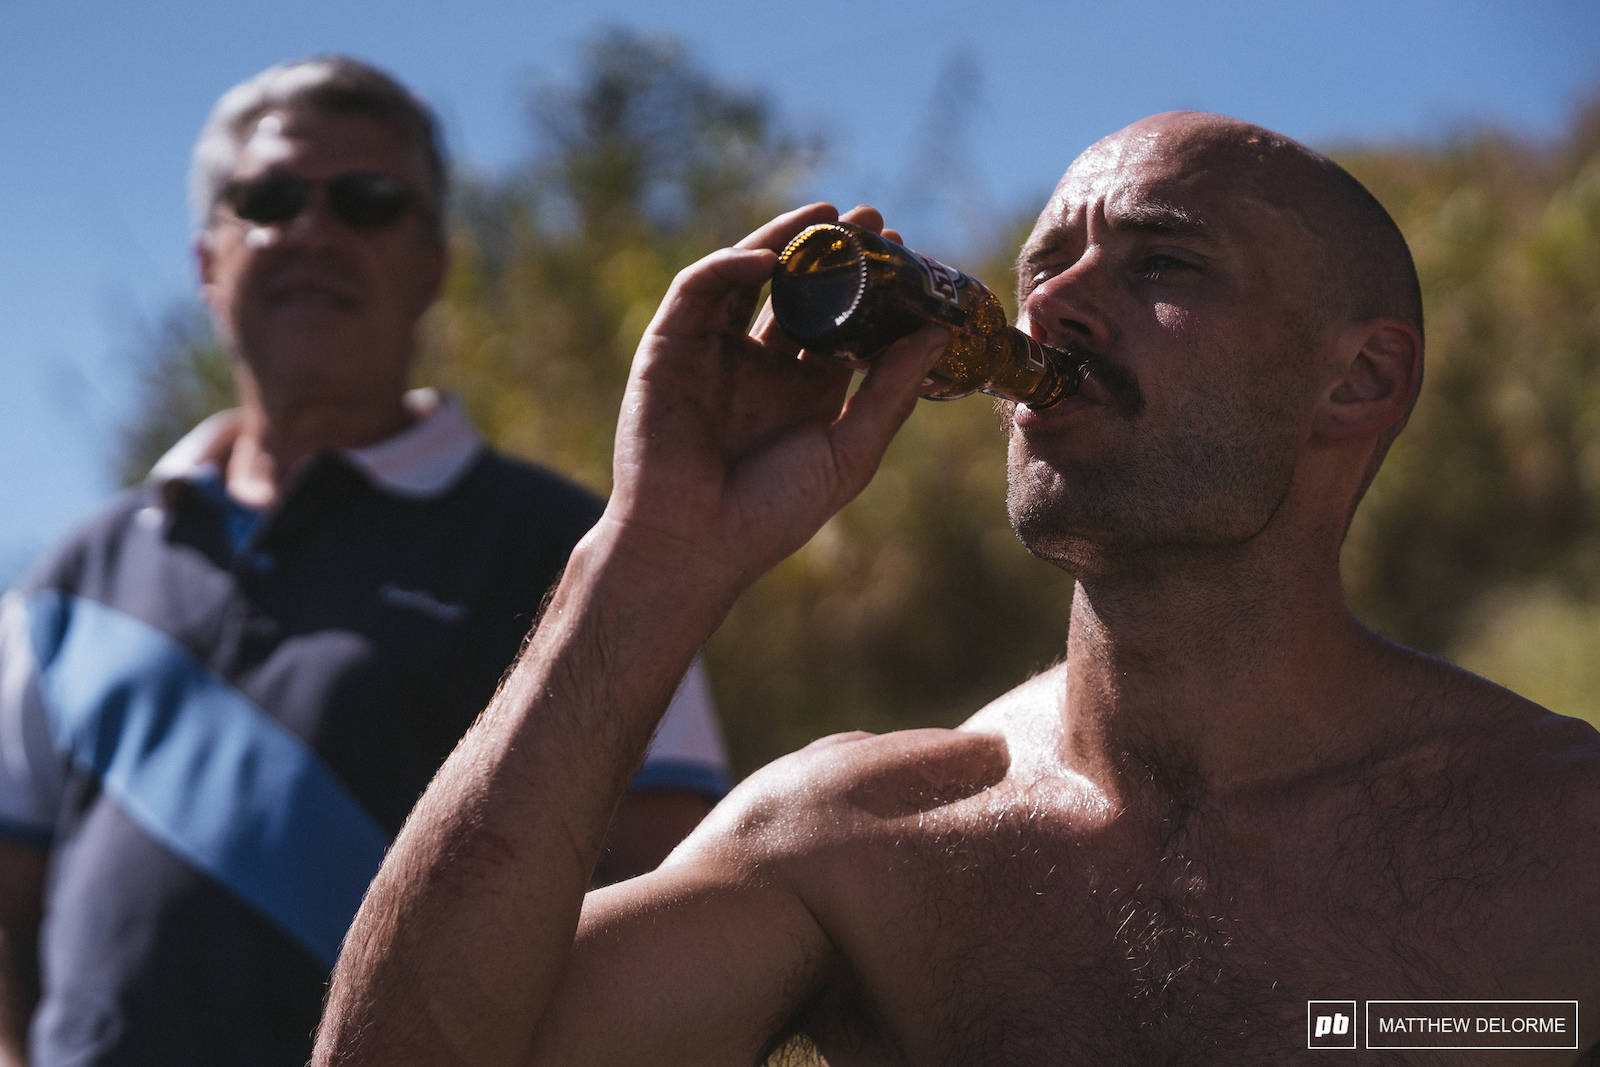 Eddie Masters enjoys a small beer after a long weekend of racing.